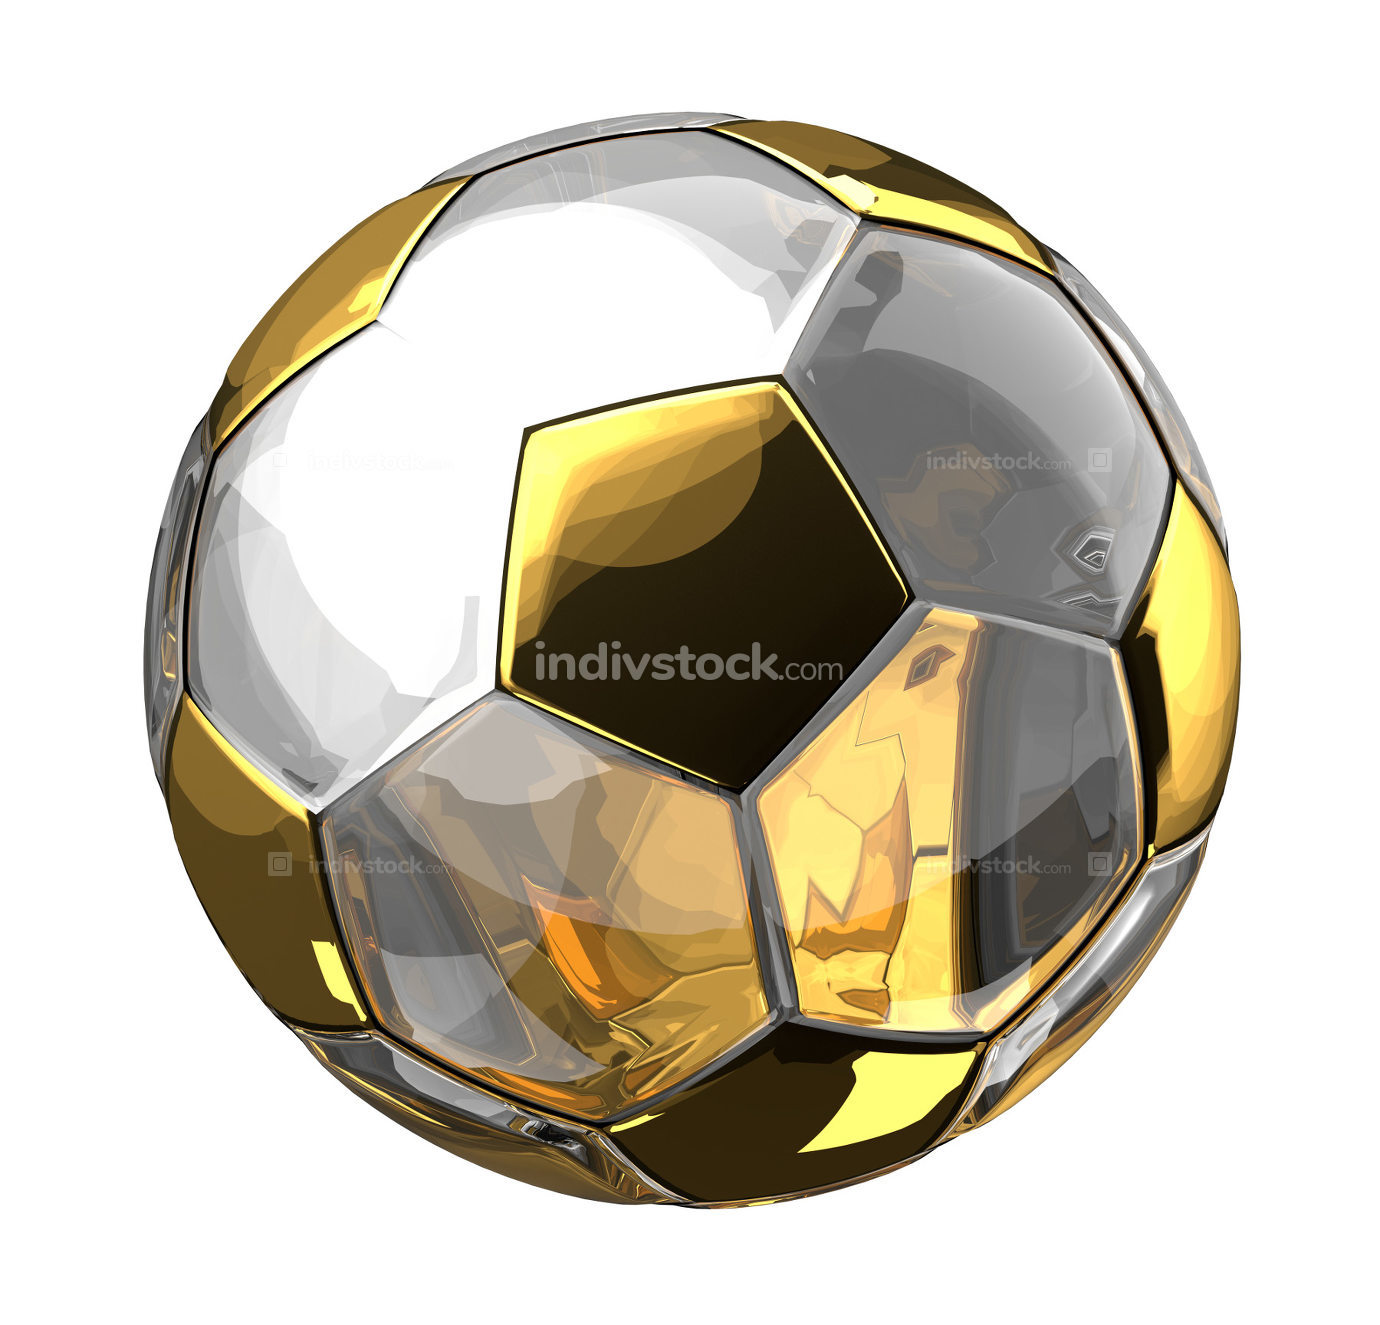 free golden soccer football ball 3d rendering